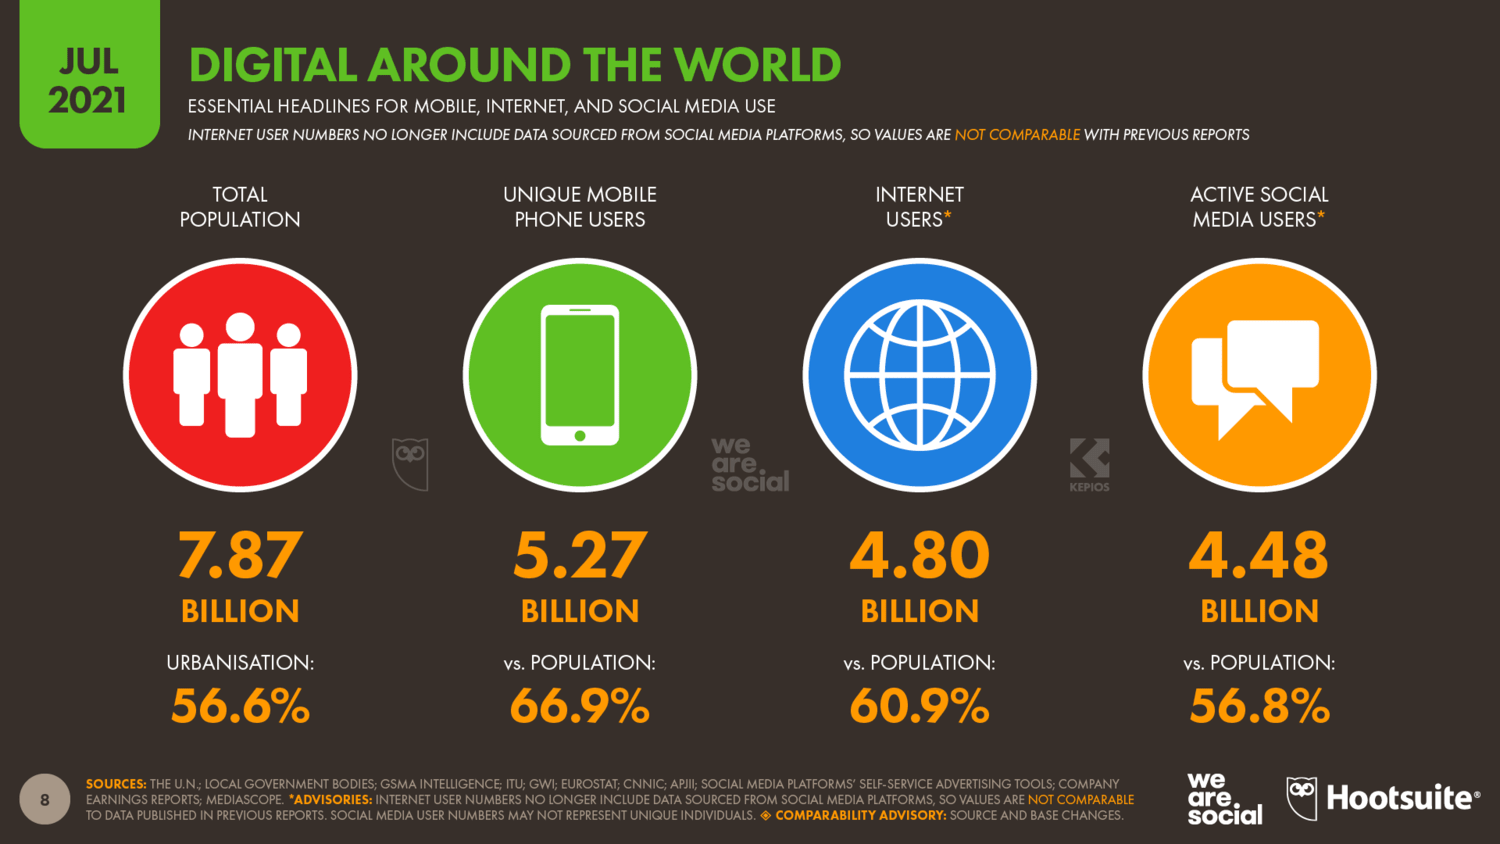 Mobile Internet and Social Media Use 2021